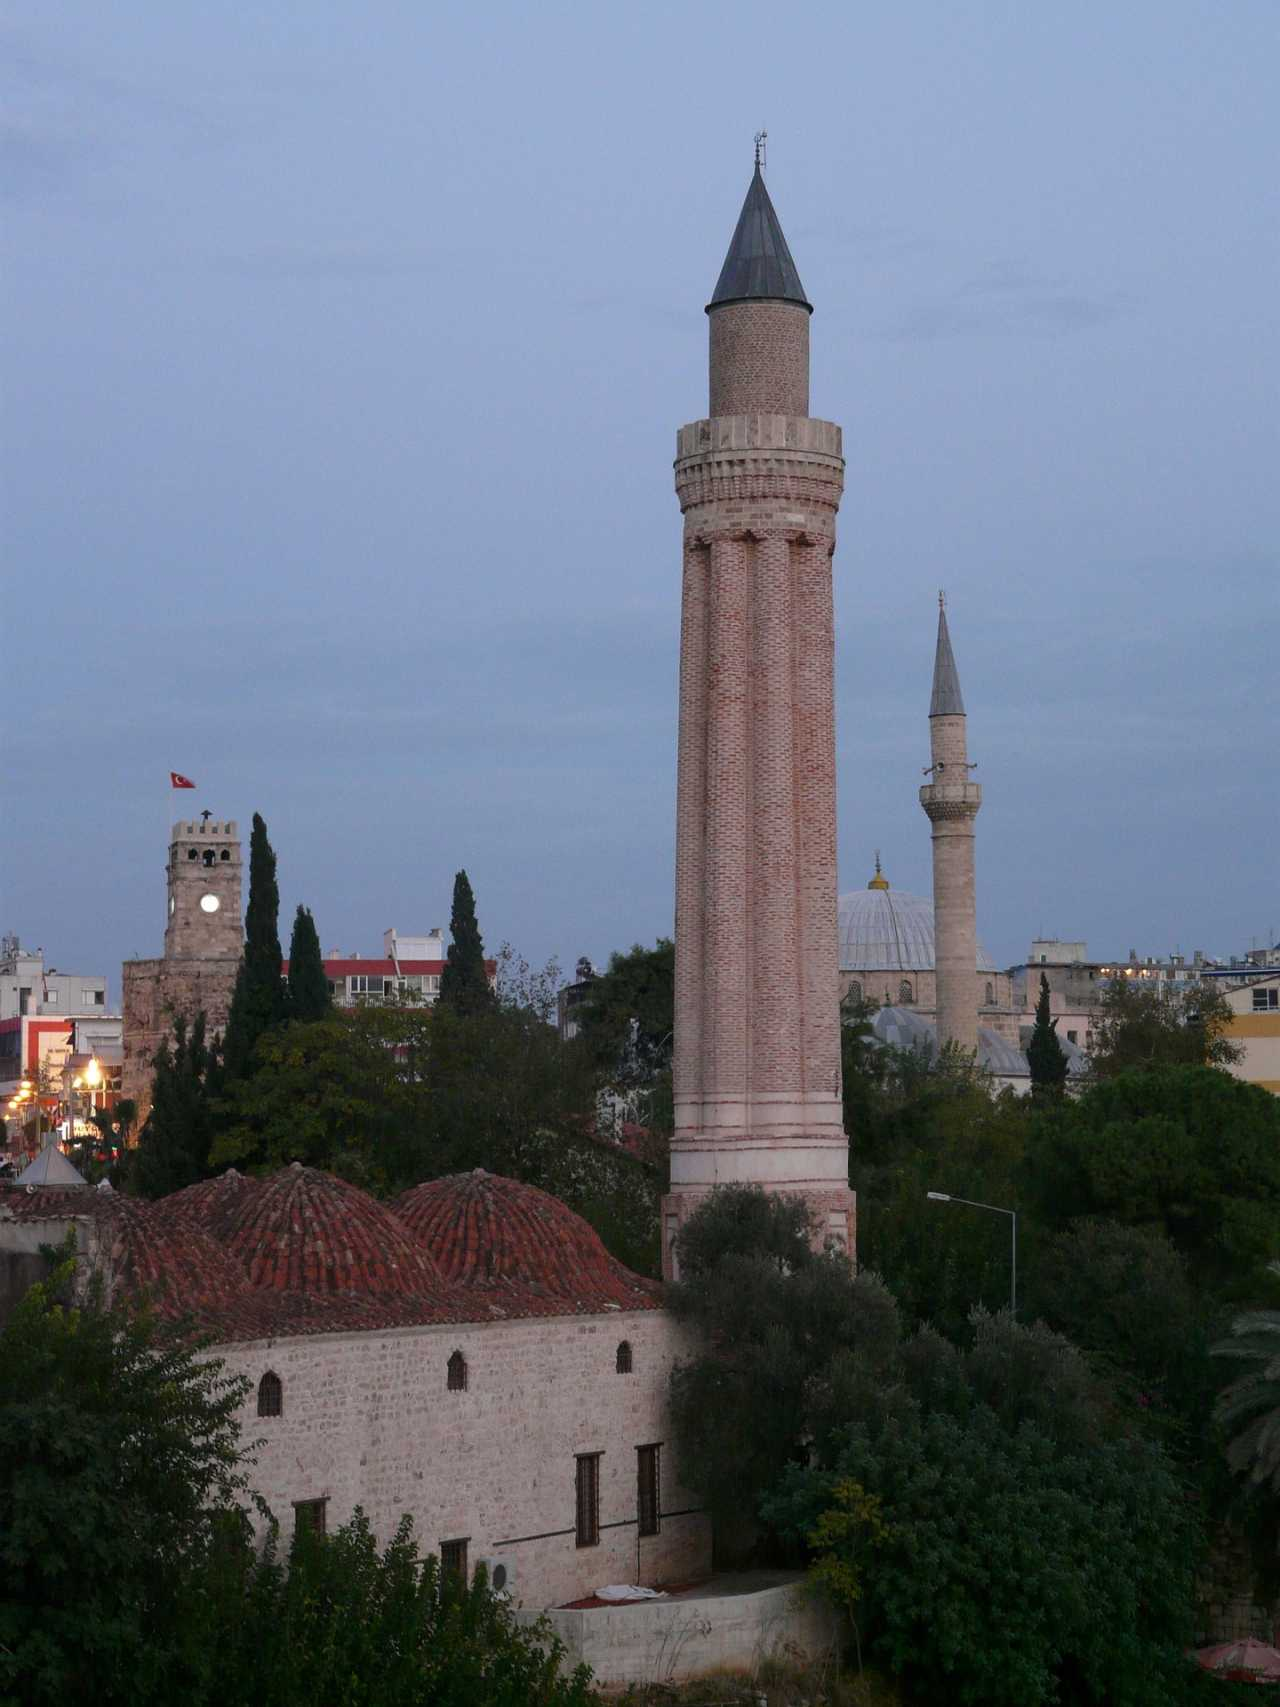 Yivliminare Mosque, Top tourist attractions in Antalya